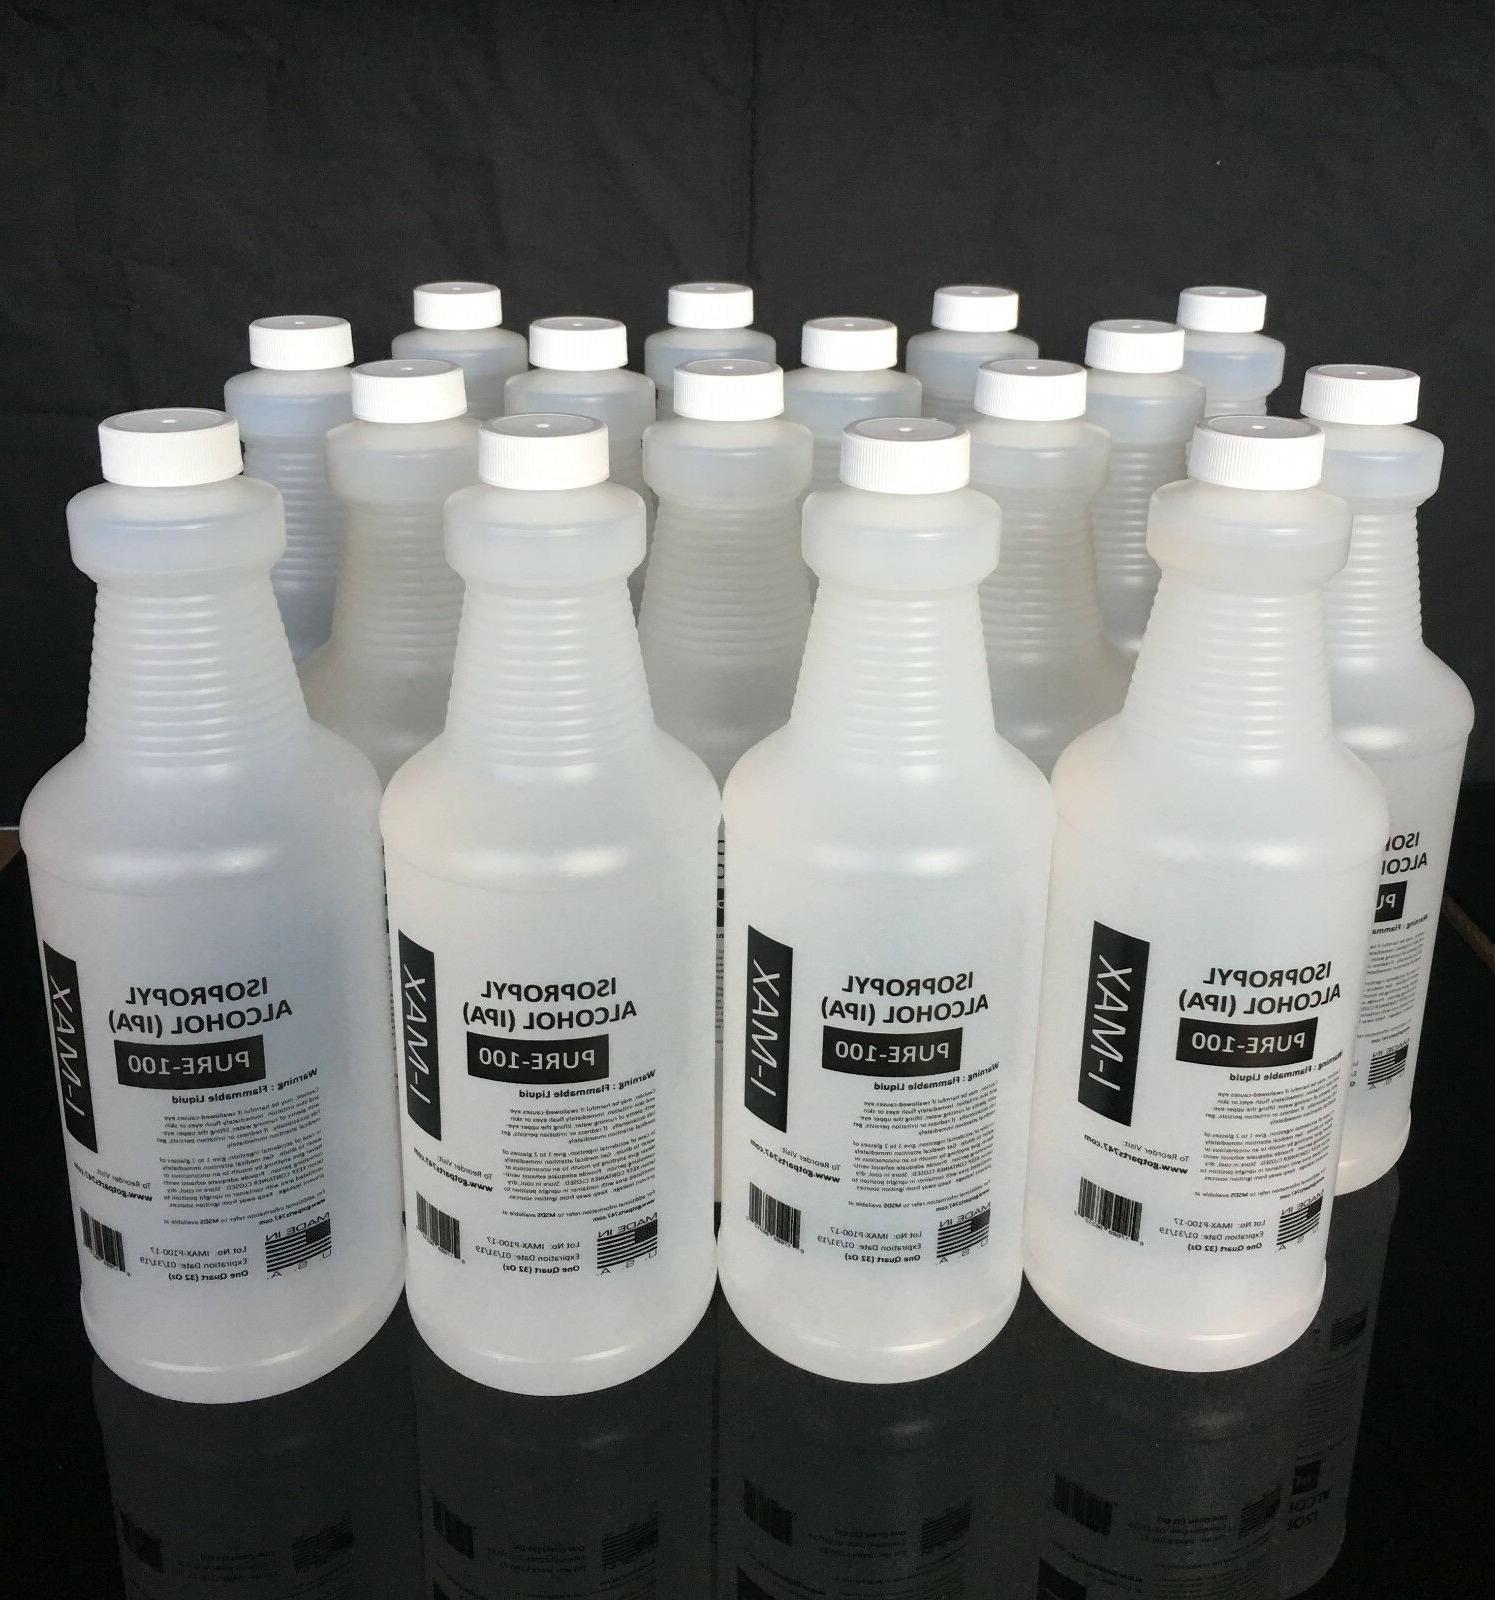 ISOPROPYL PURE100, 1 1 2 GALLONS, 4 5